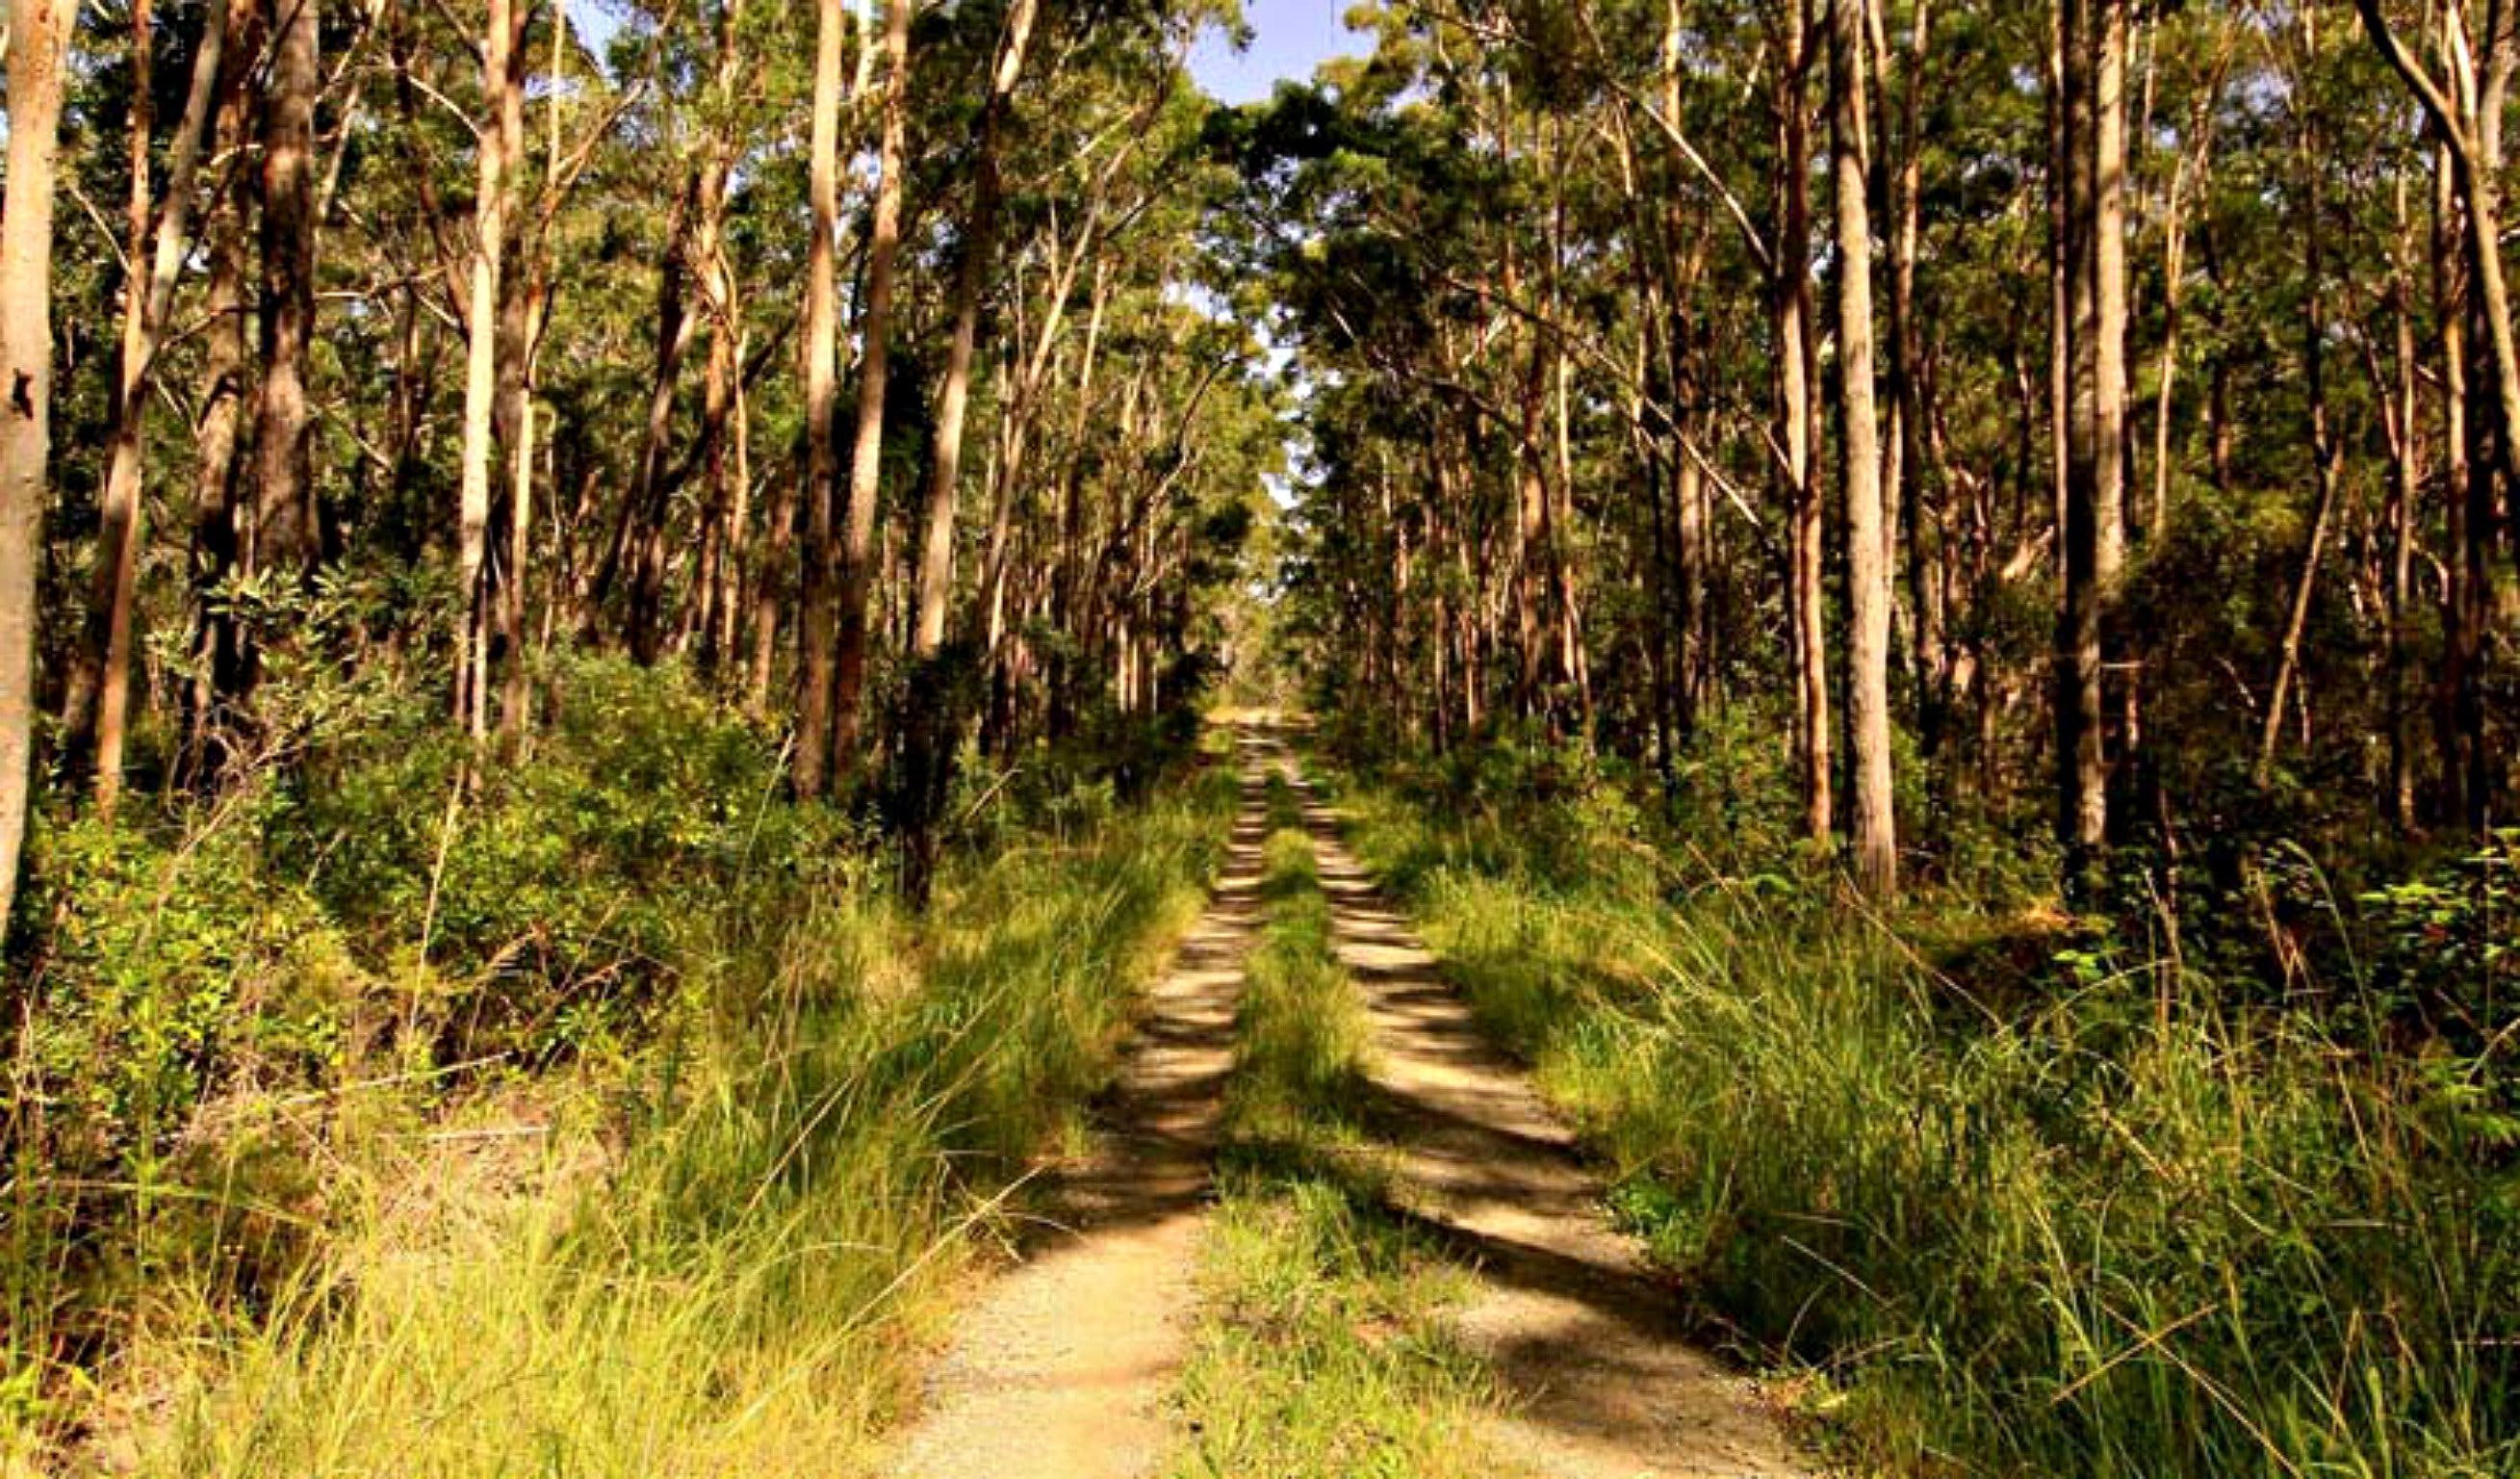 Mining Road Fire Trail Old Gibber Road Rire Trail - Accommodation Sunshine Coast